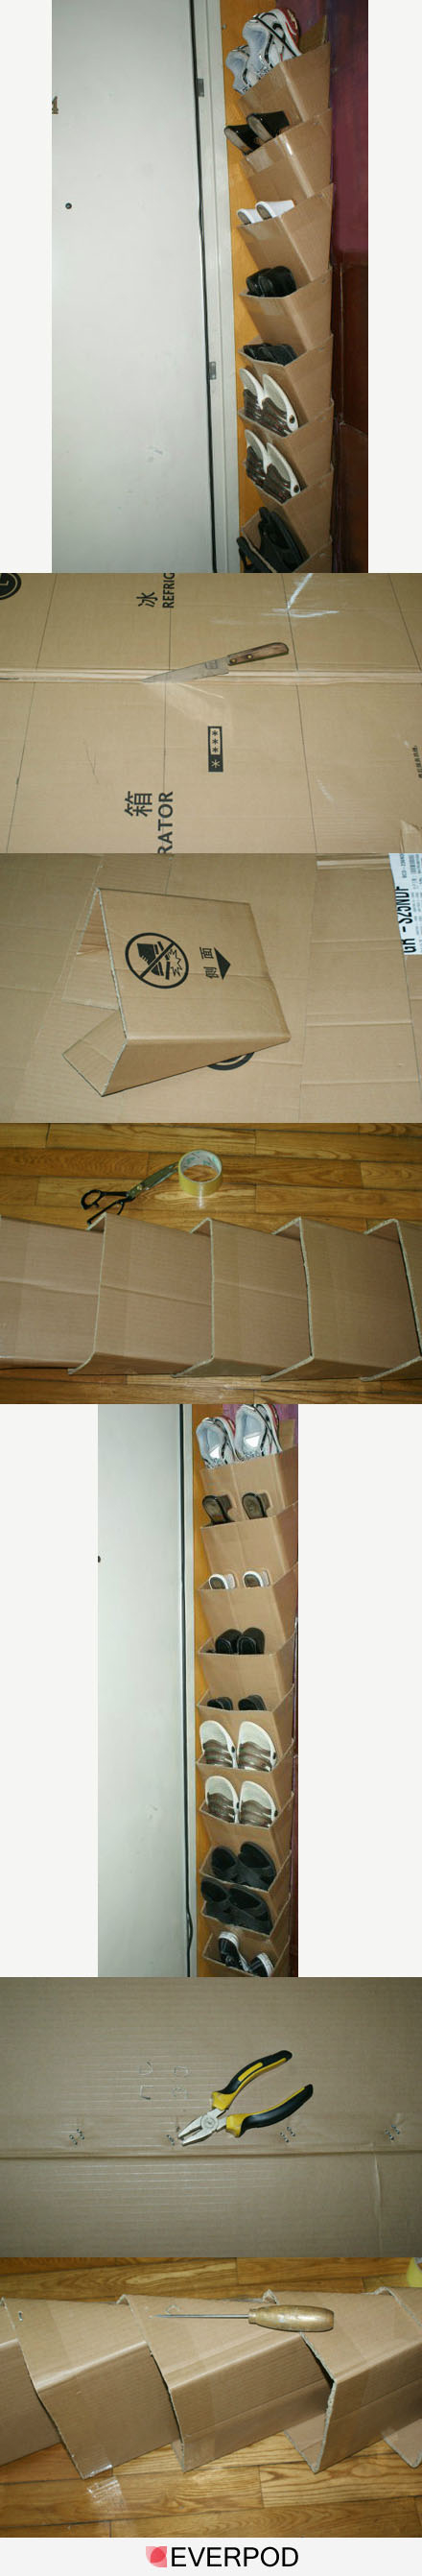 Diy shoe organizer pictures photos and images for for Diy shoe storage with cardboard